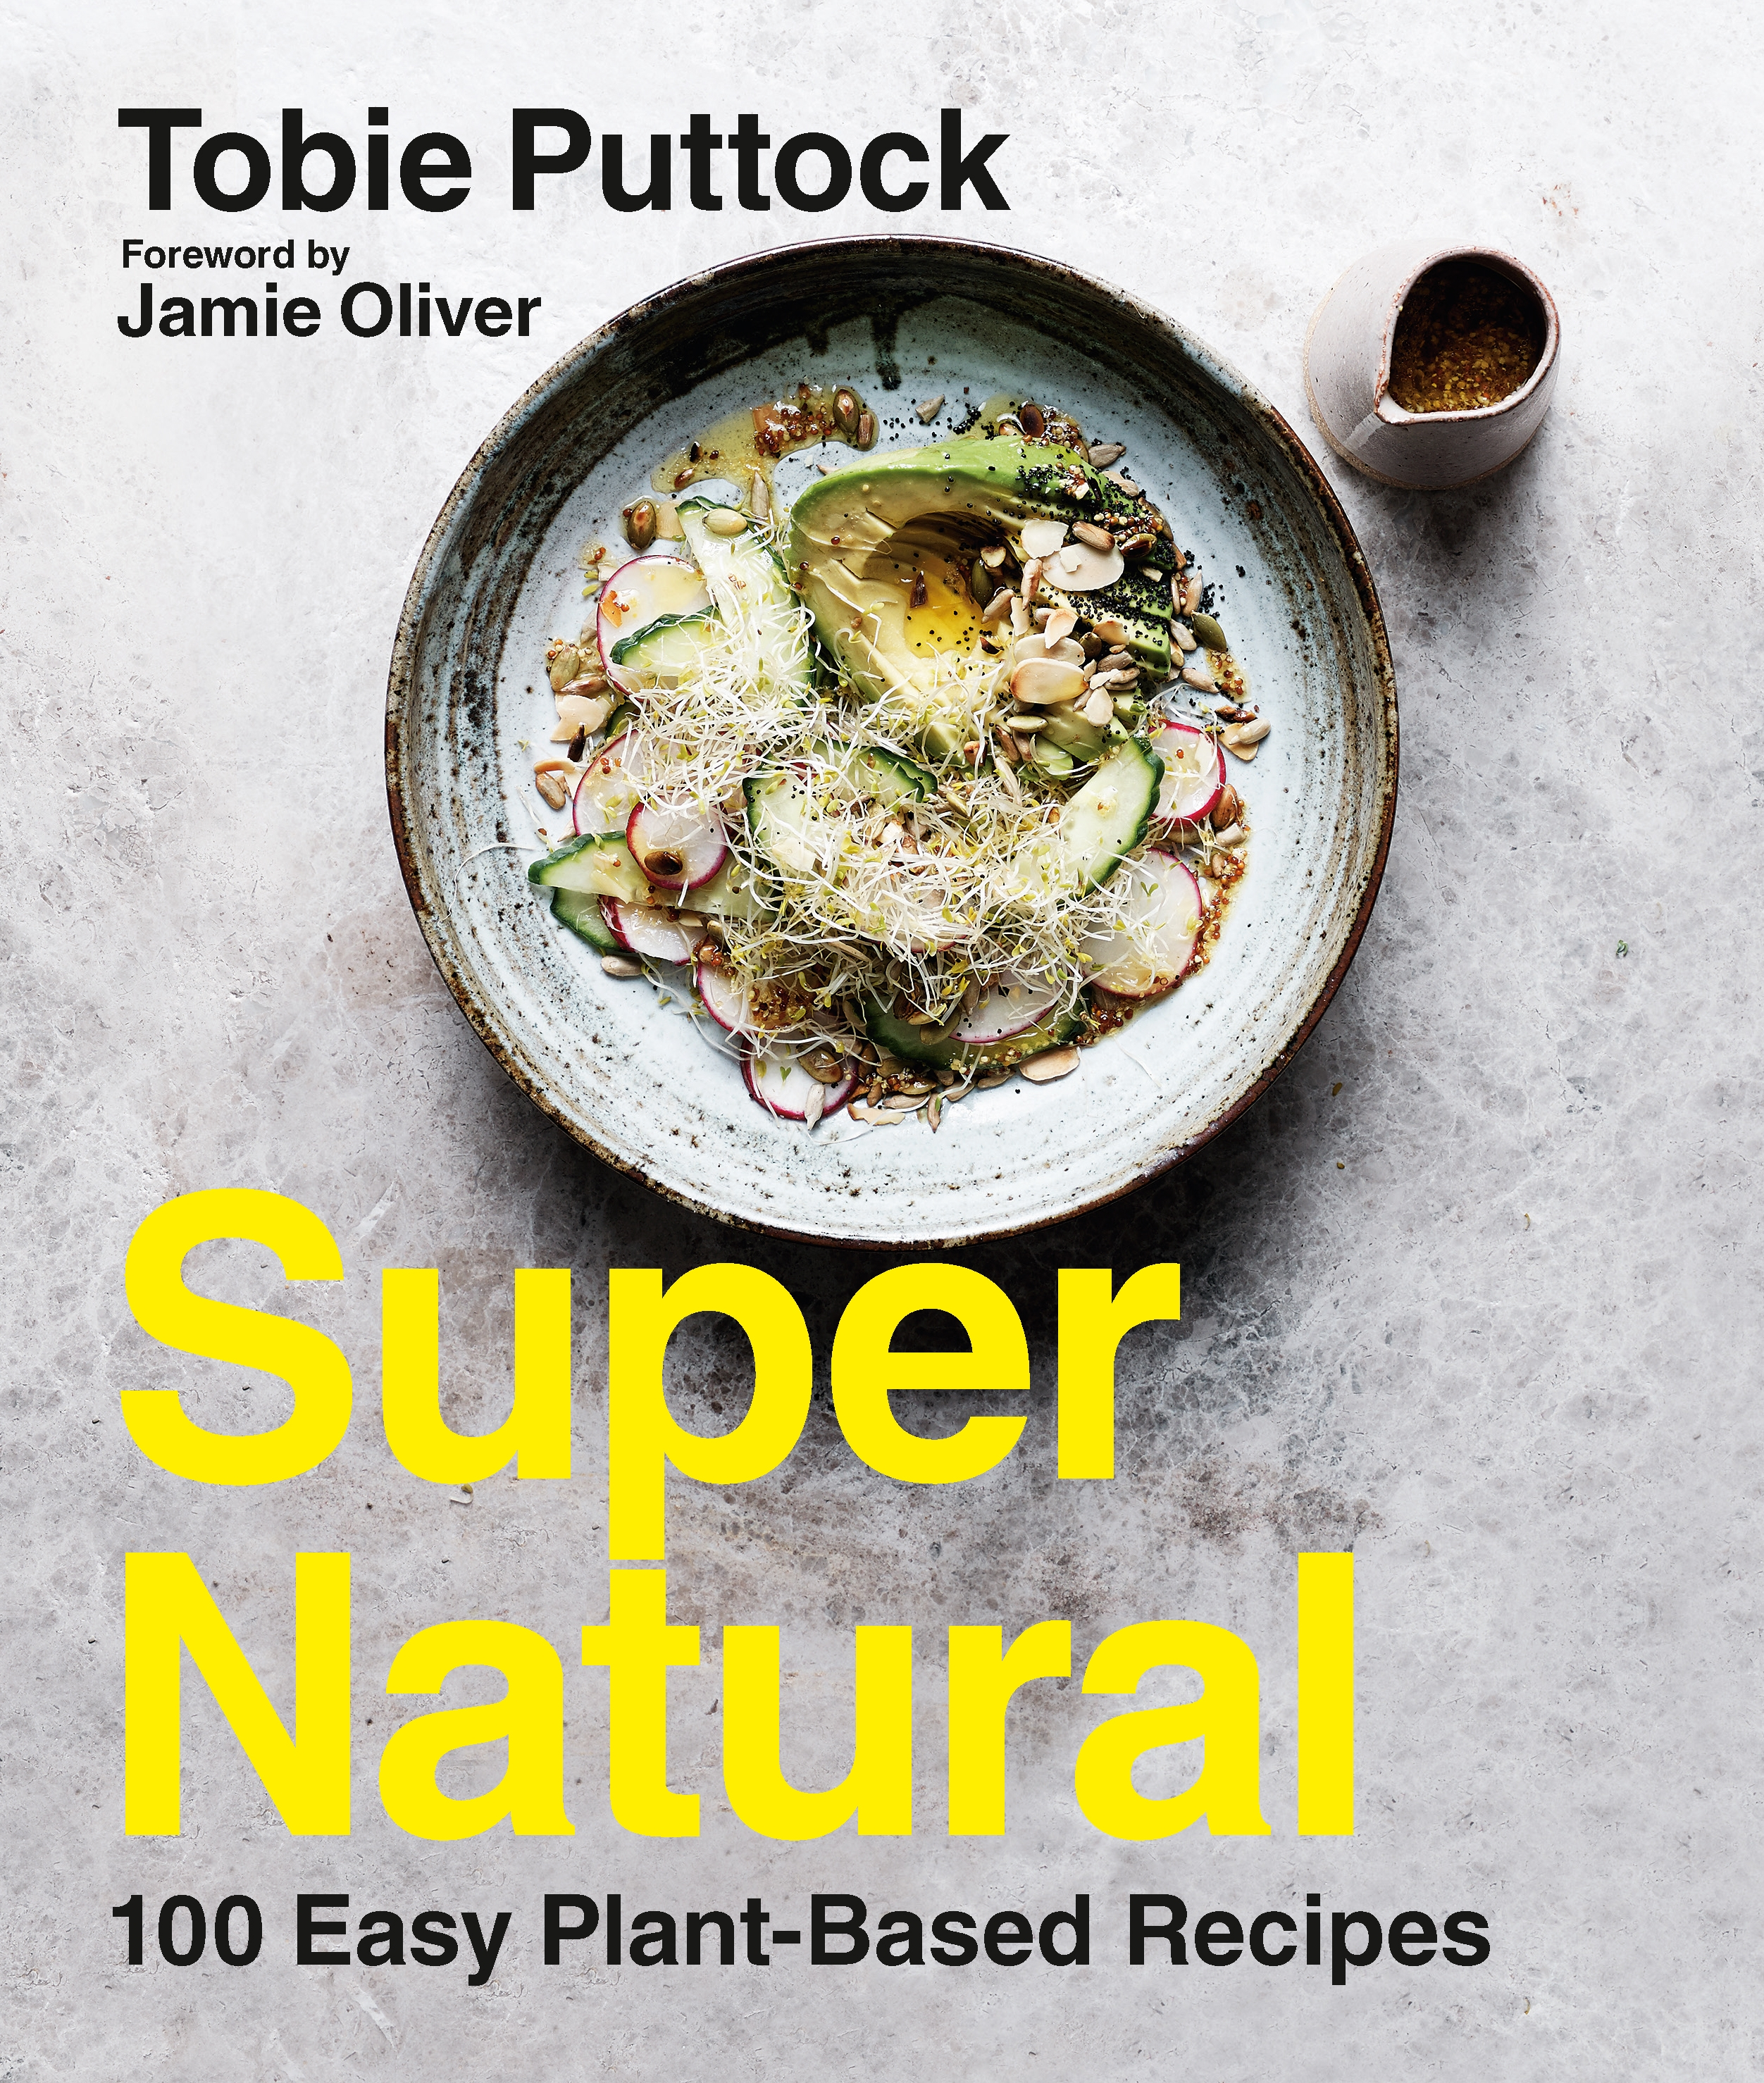 SuperNatural by Tobie Puttock, ISBN: 9780143792178